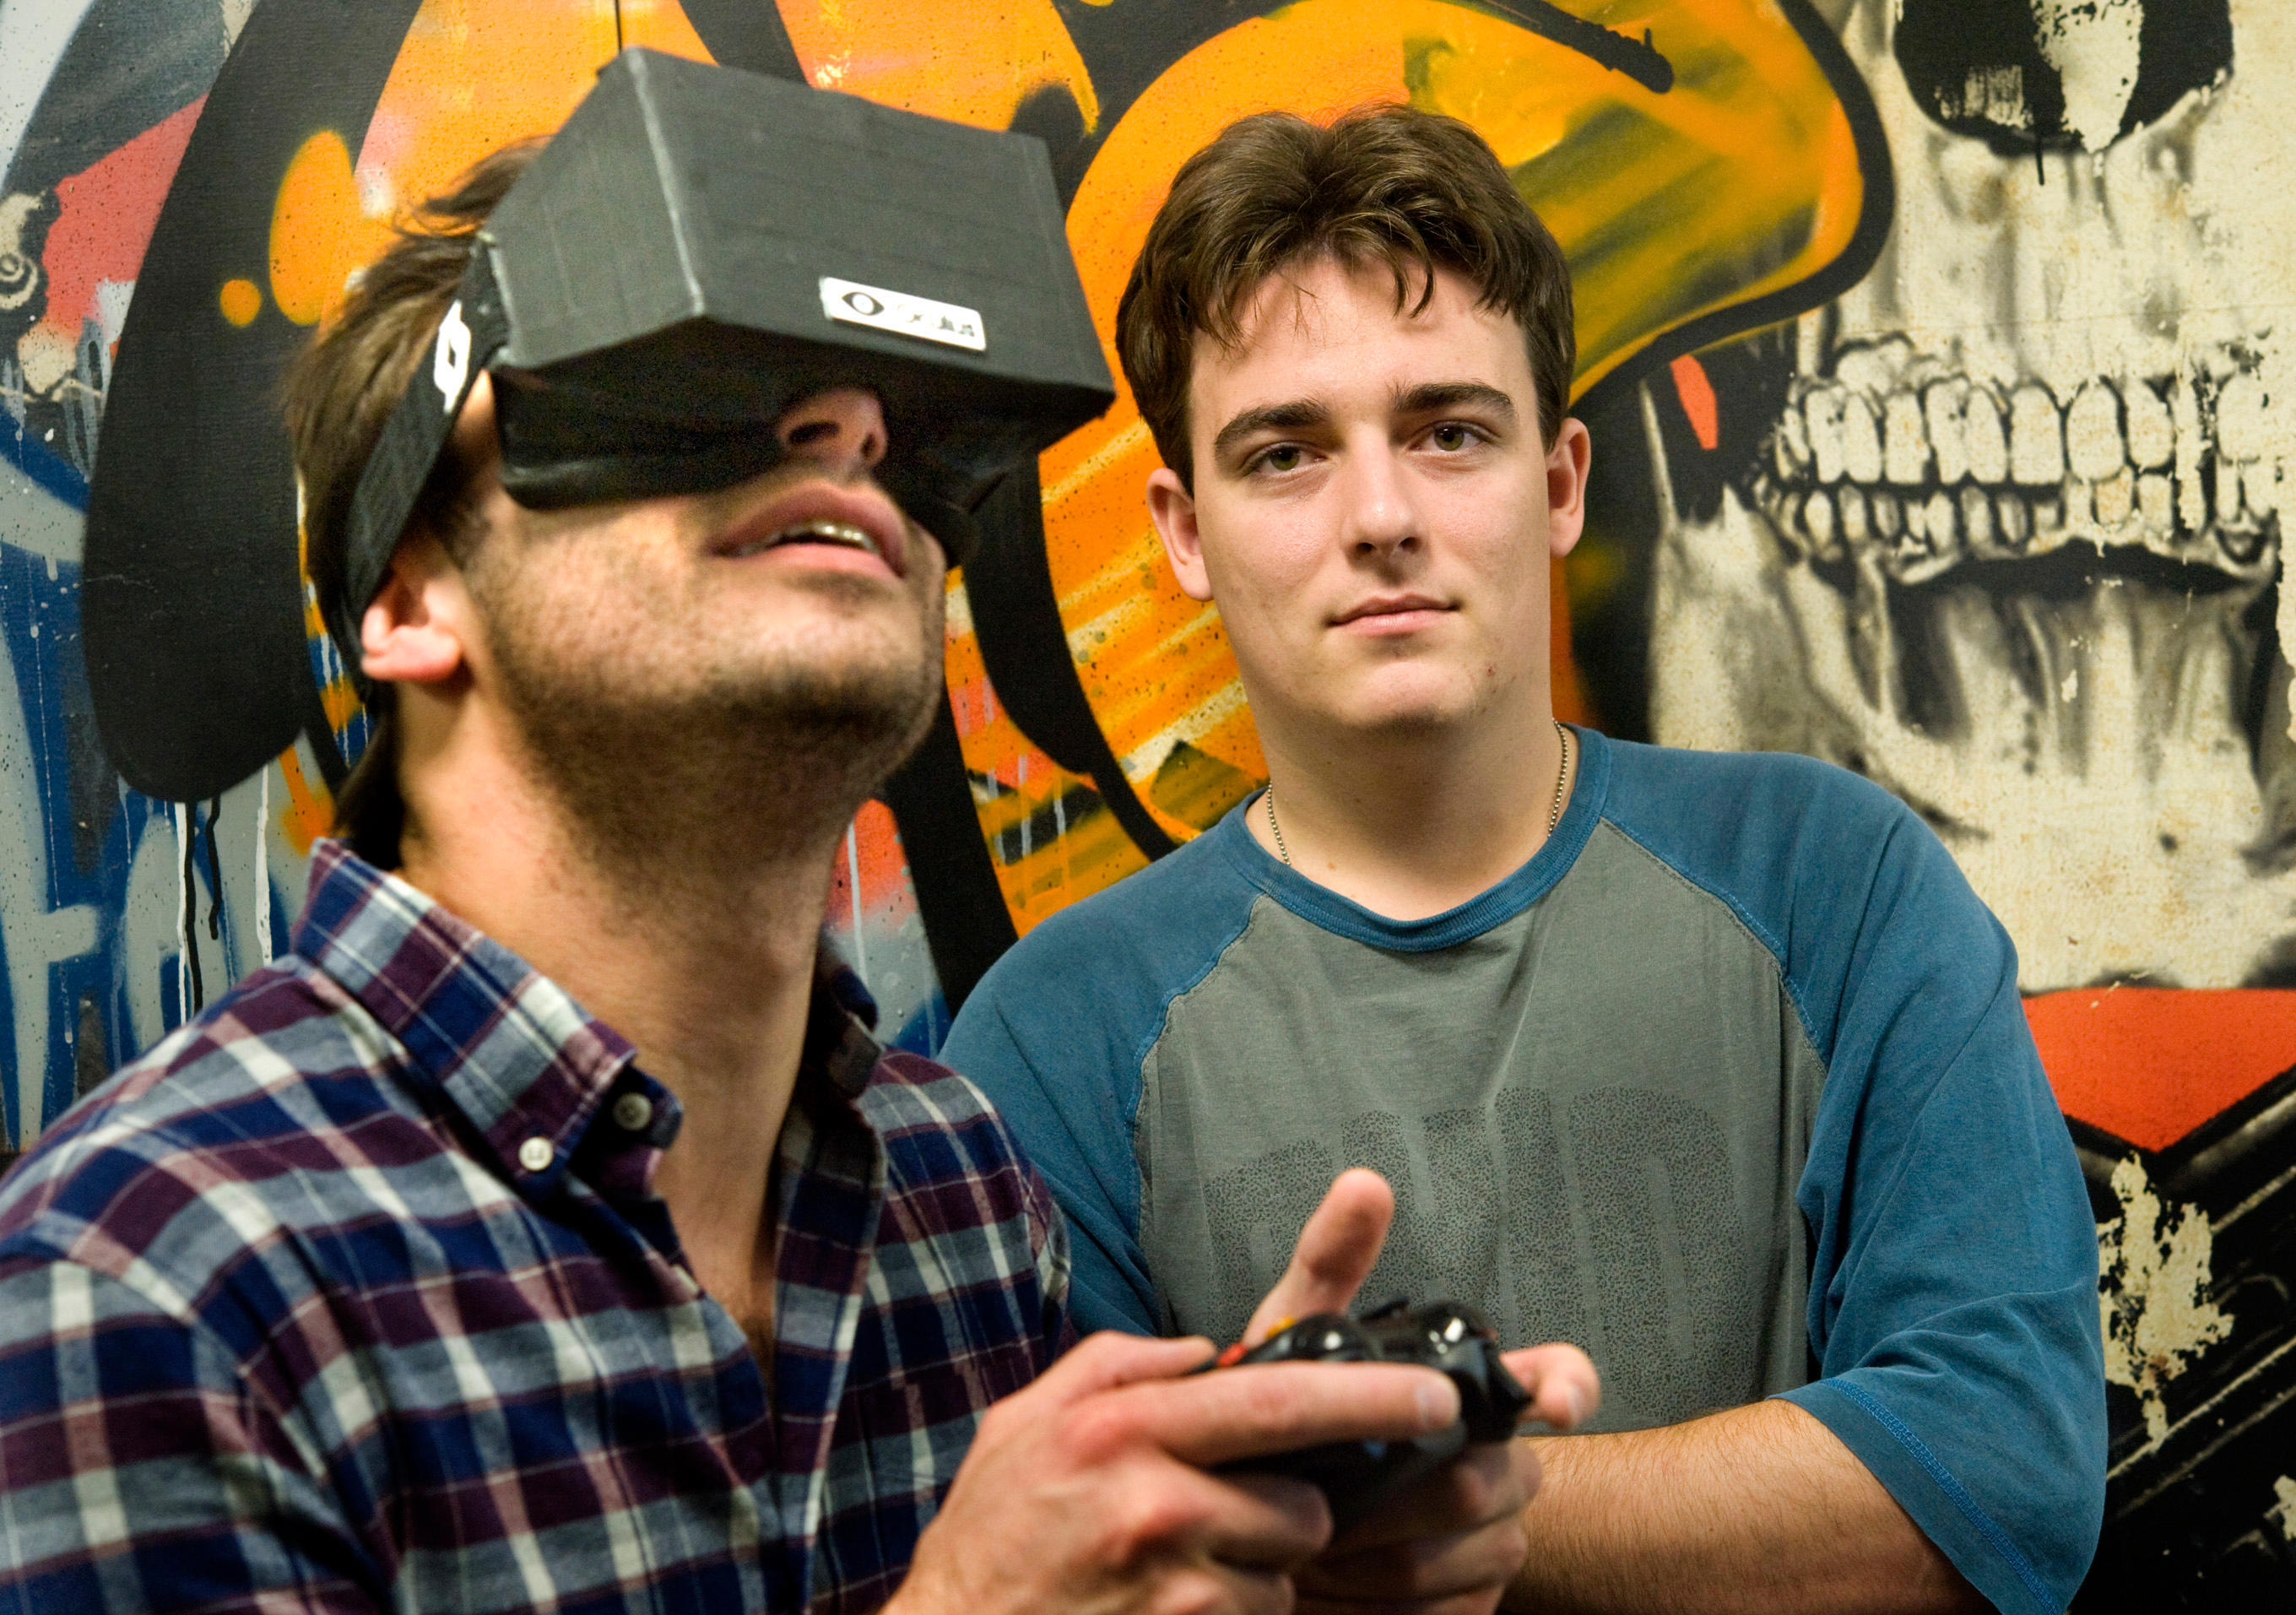 Nov. 14, 2011 - Irvine, California, U.S. - Oculus VR founder Palmer Luckey, 20, right, is the inventor of a virtual reality gaming headset that aims to be the next generation video game console. Oculus, based in Irvine, raised  $2.4 milliion on Kickstarte